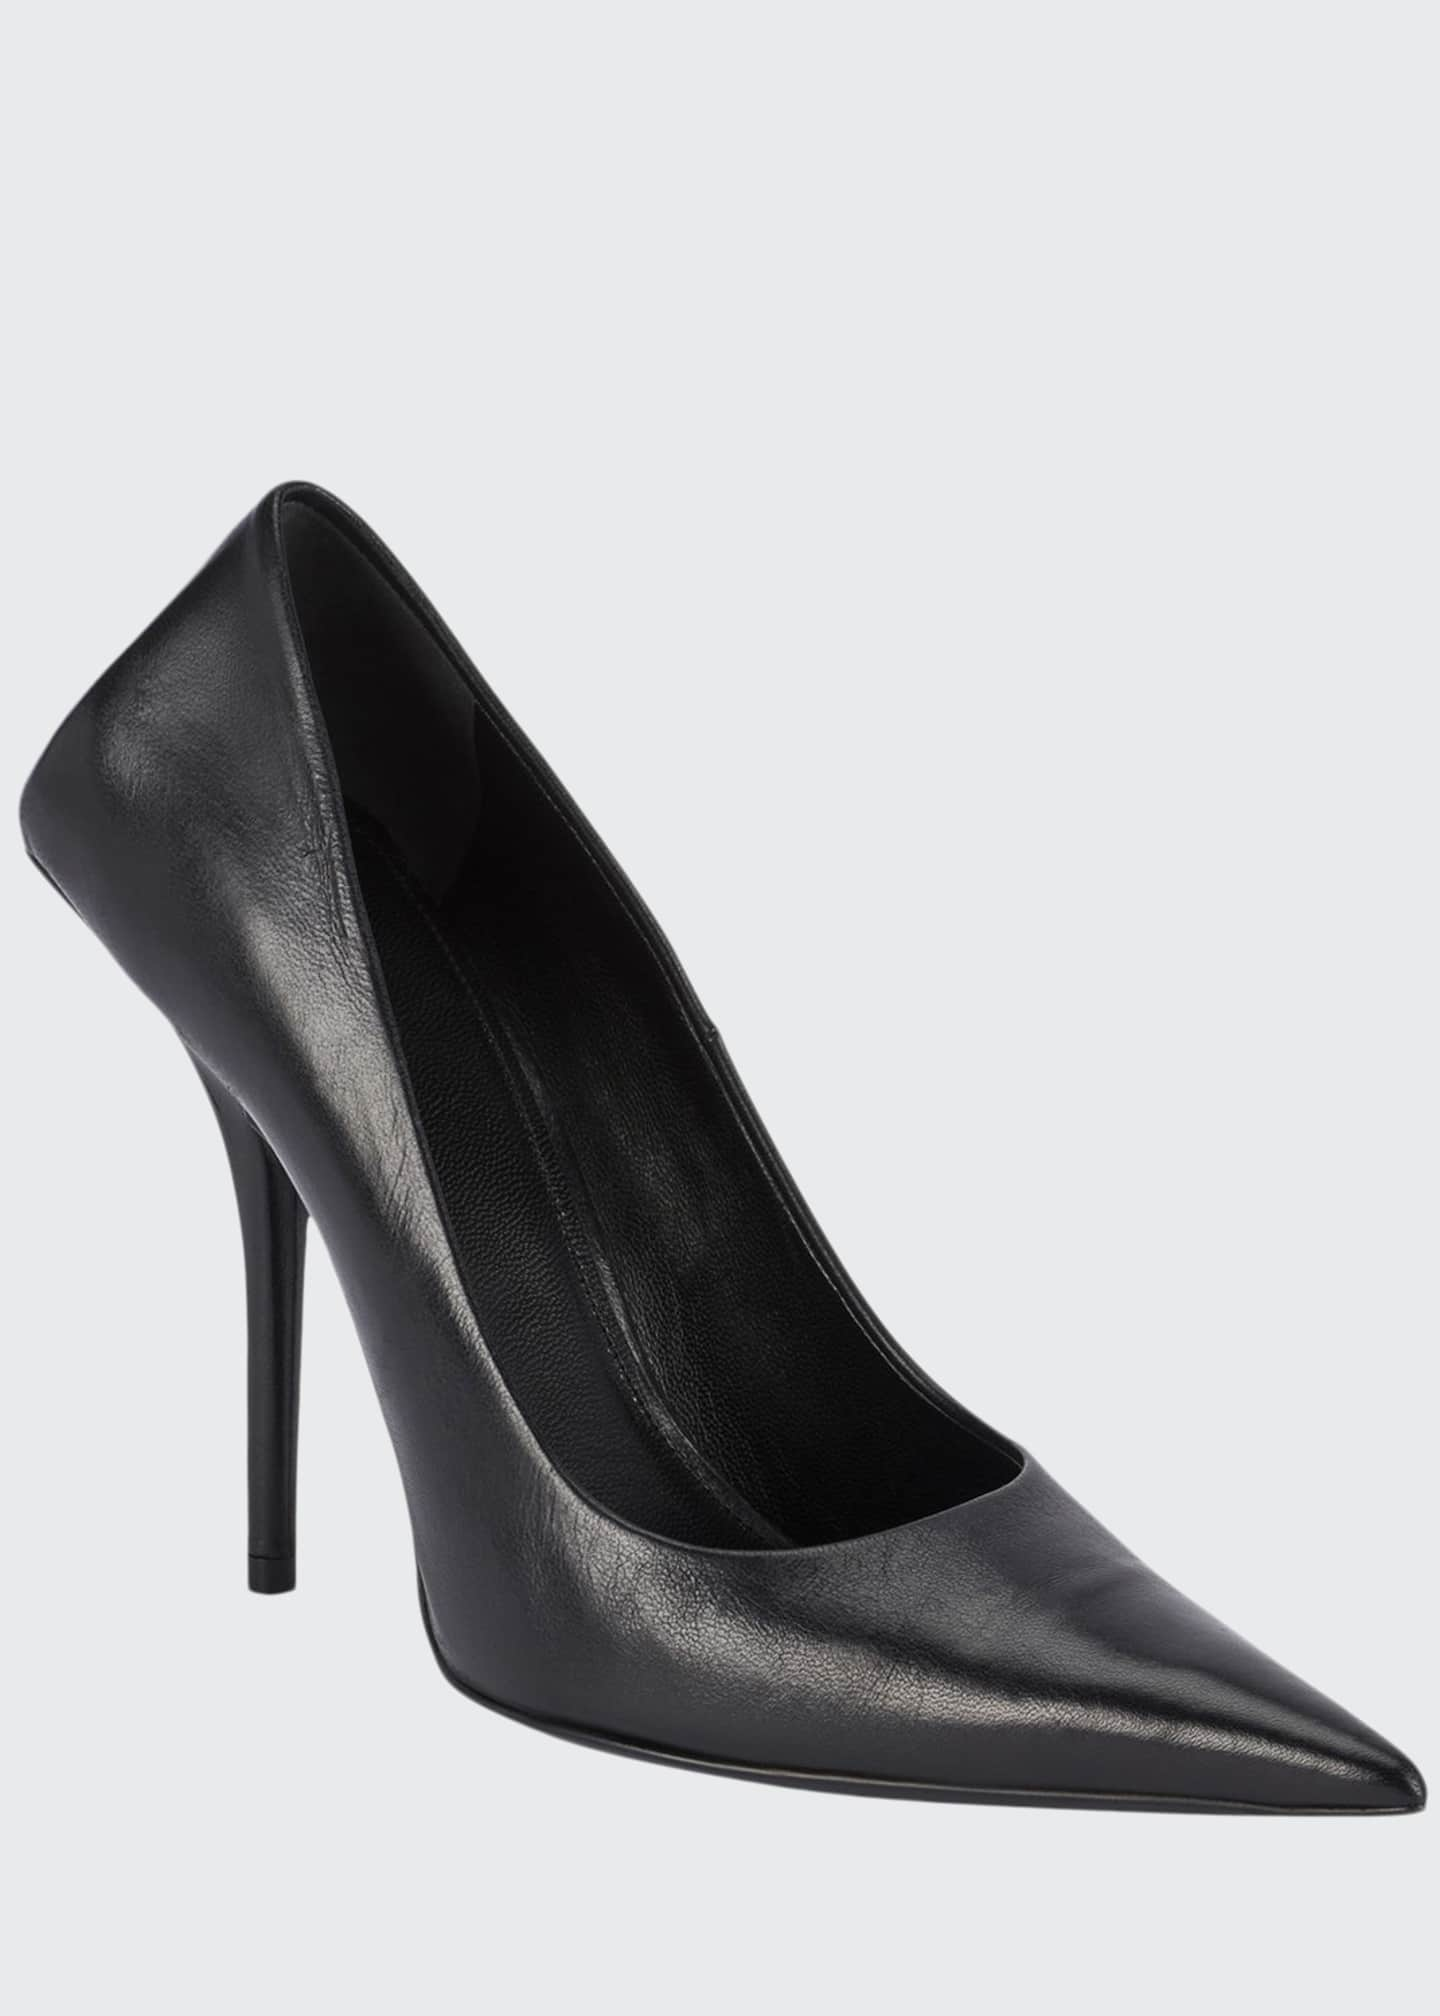 Balenciaga 80mm Square-Back Lambskin Knife Pumps